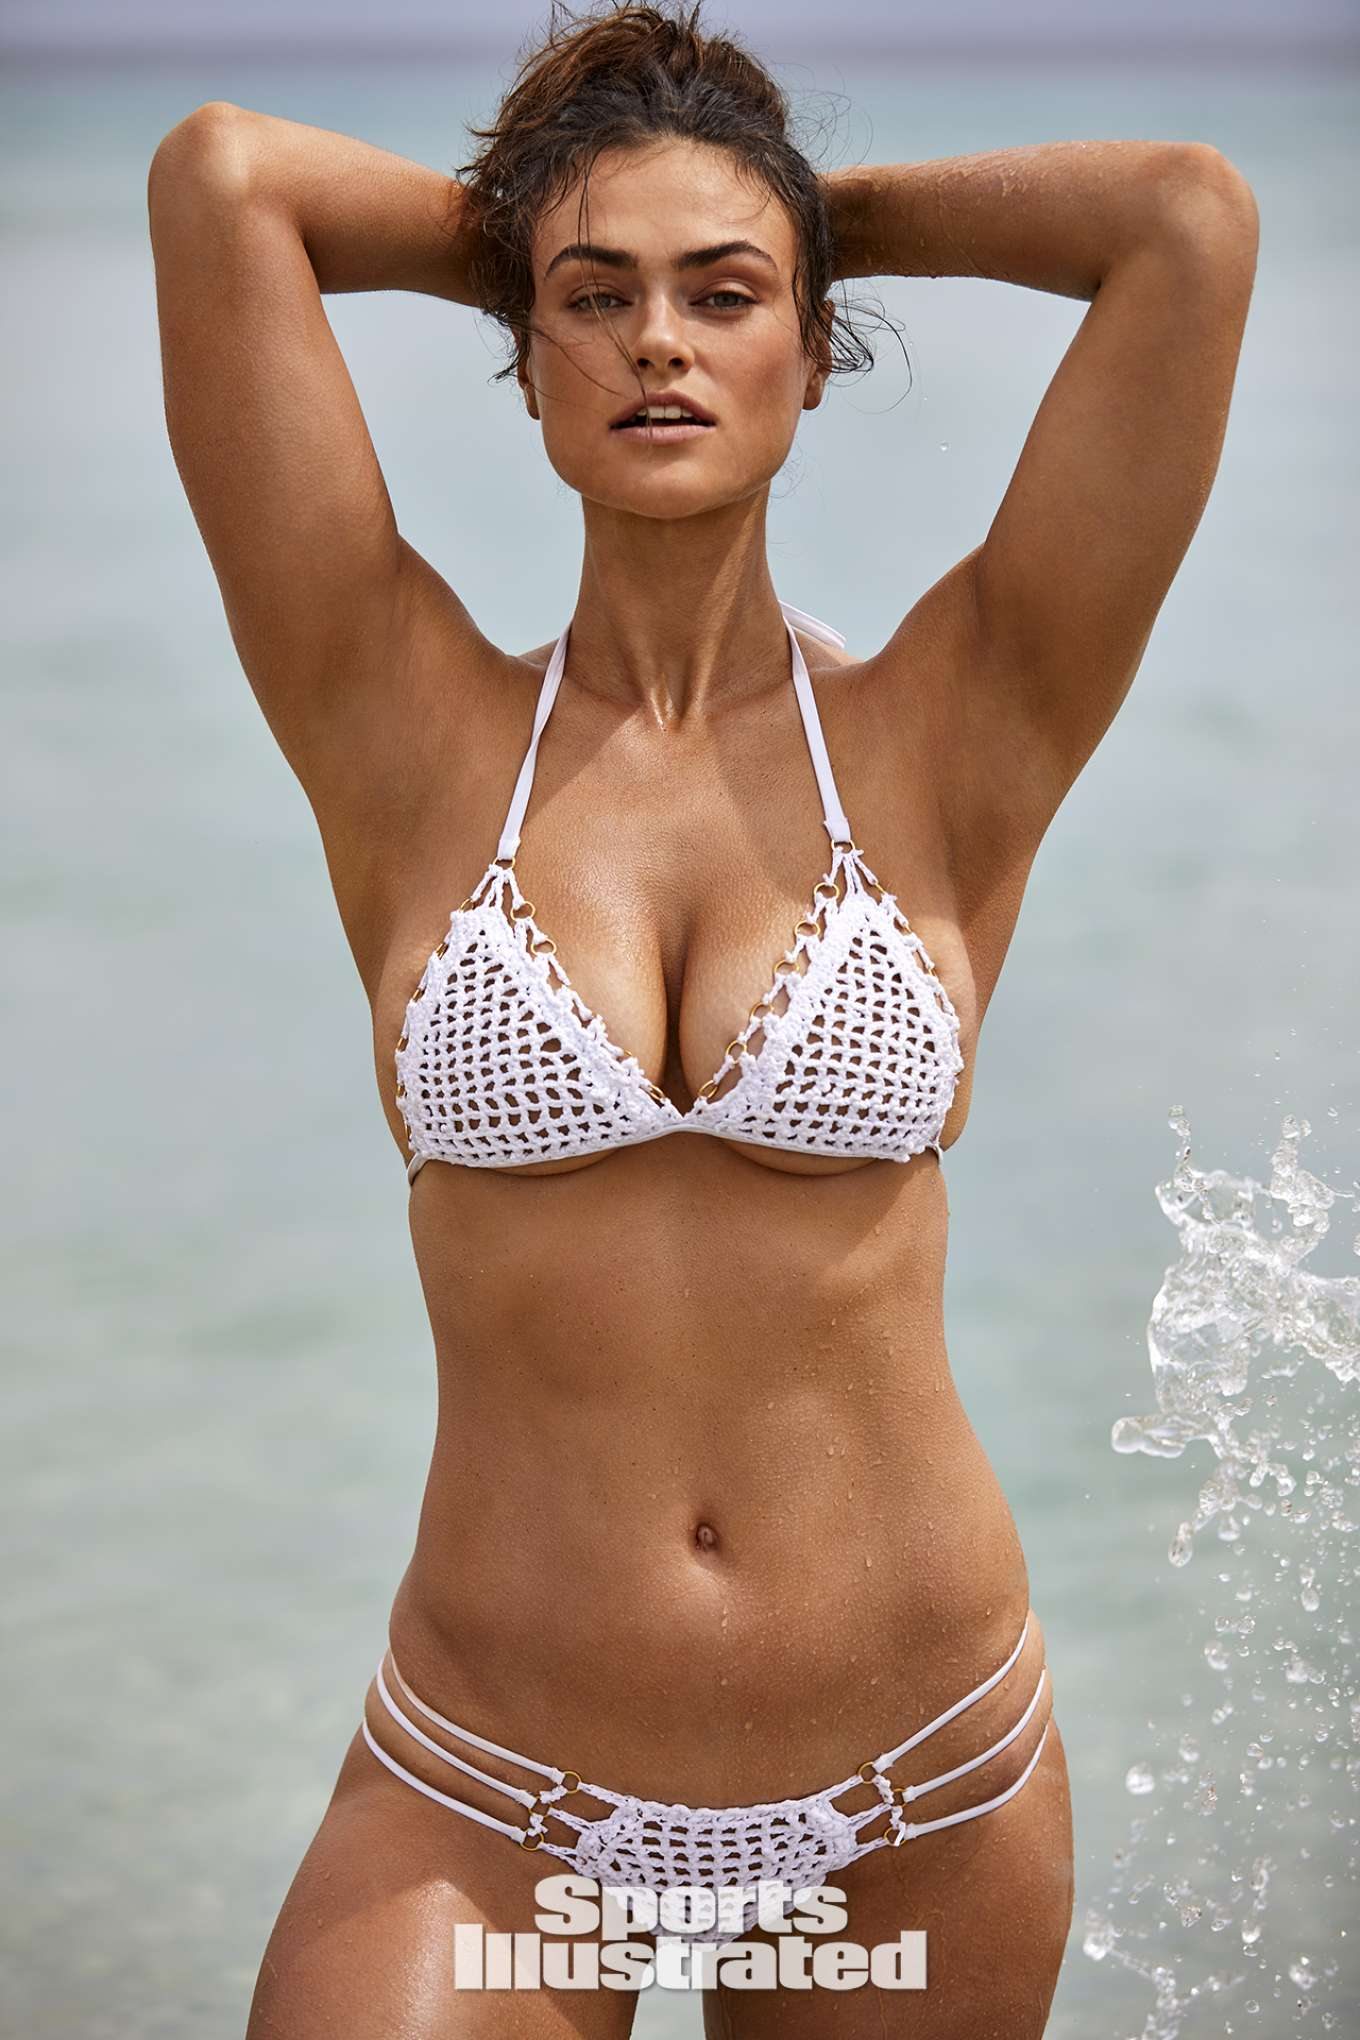 Sports Illustrated Swimsuit Model Myla Dalbesio Directs an